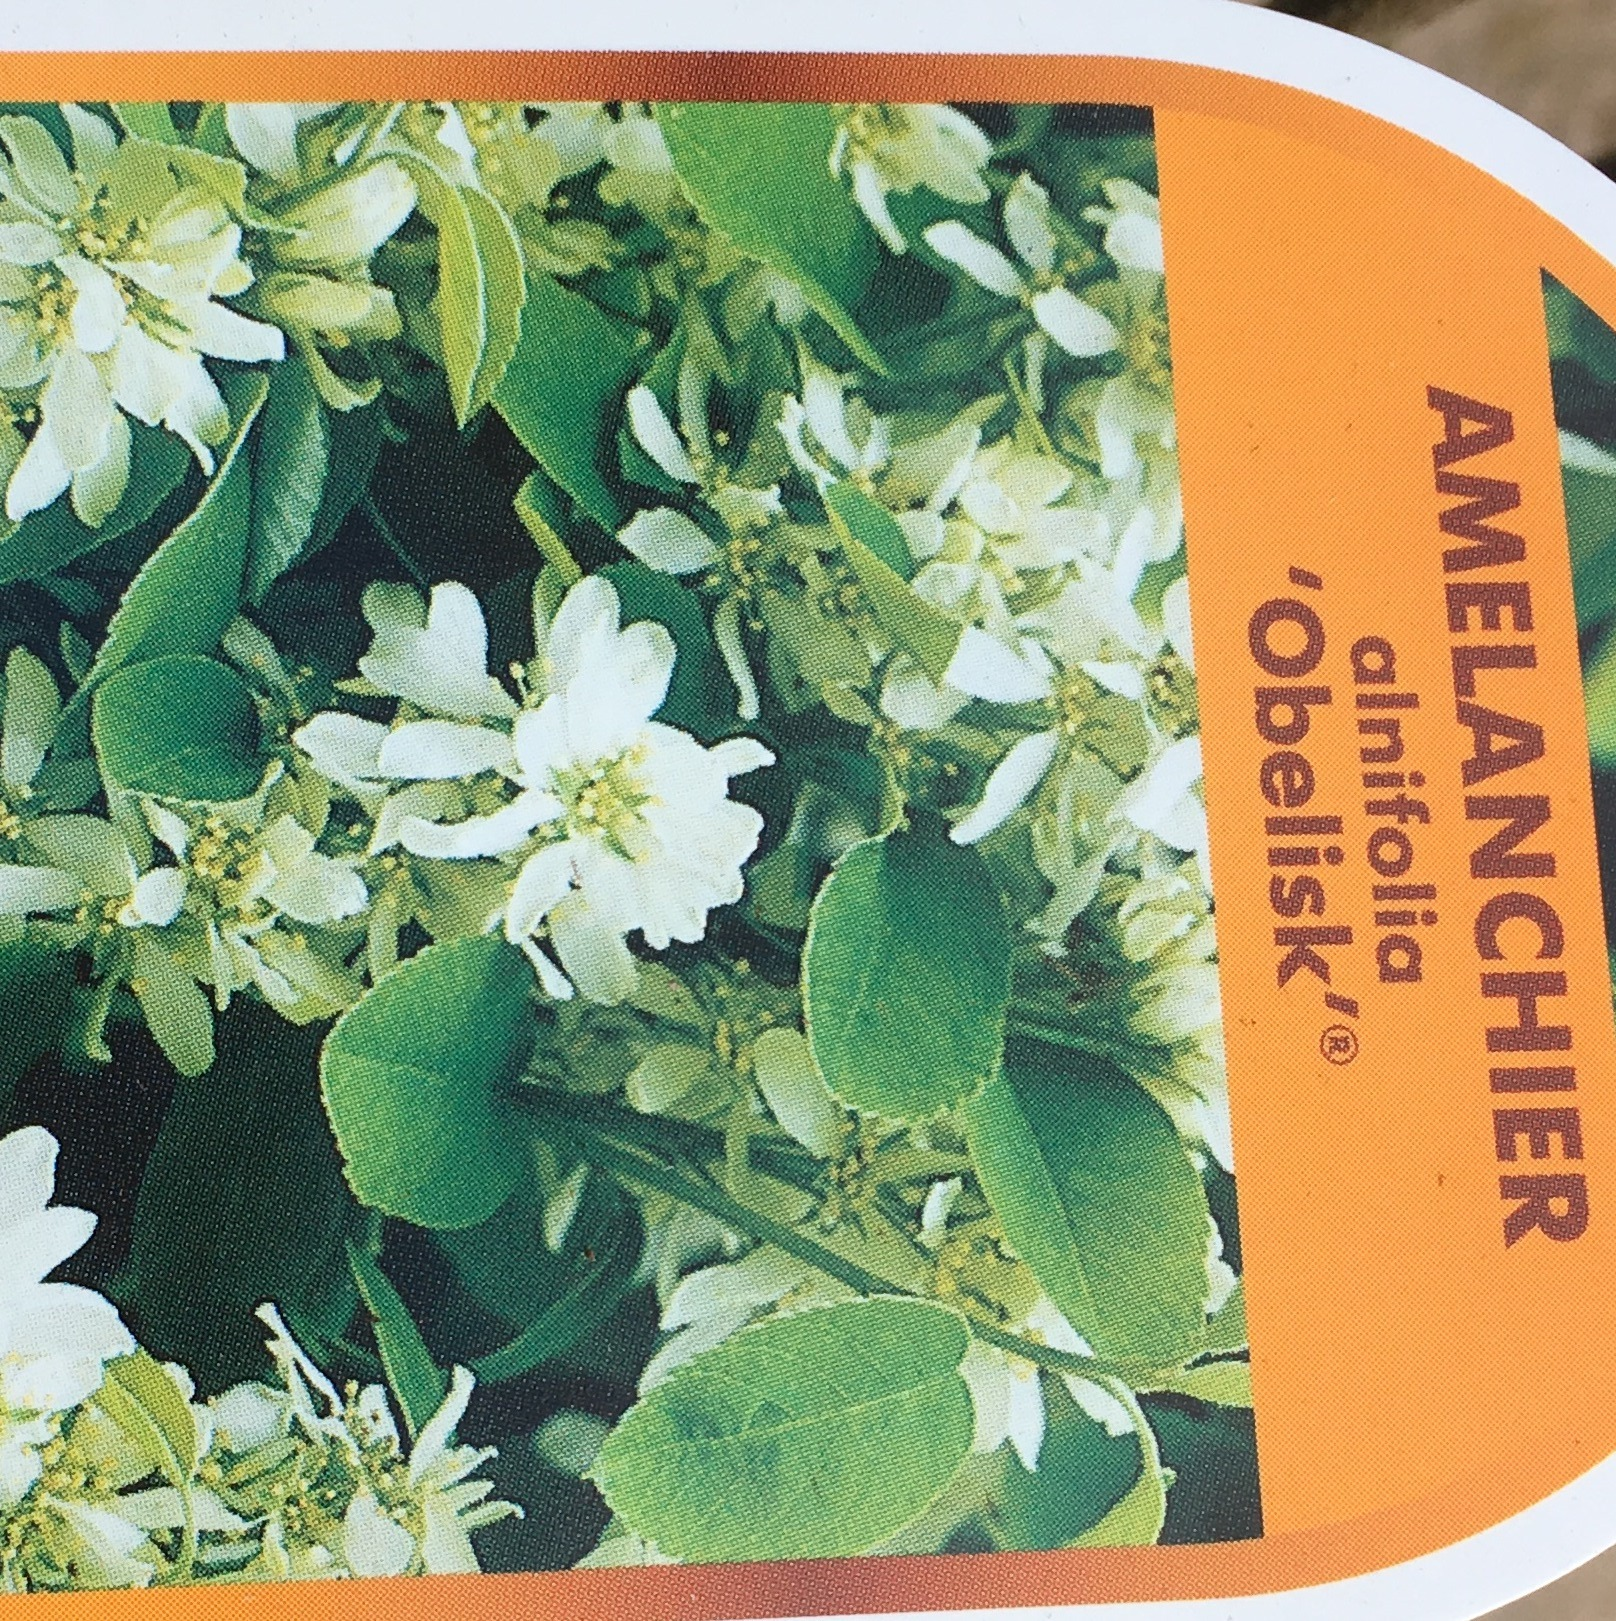 amelanchier alnifolia obelisk 5 litre bridgend garden centre. Black Bedroom Furniture Sets. Home Design Ideas